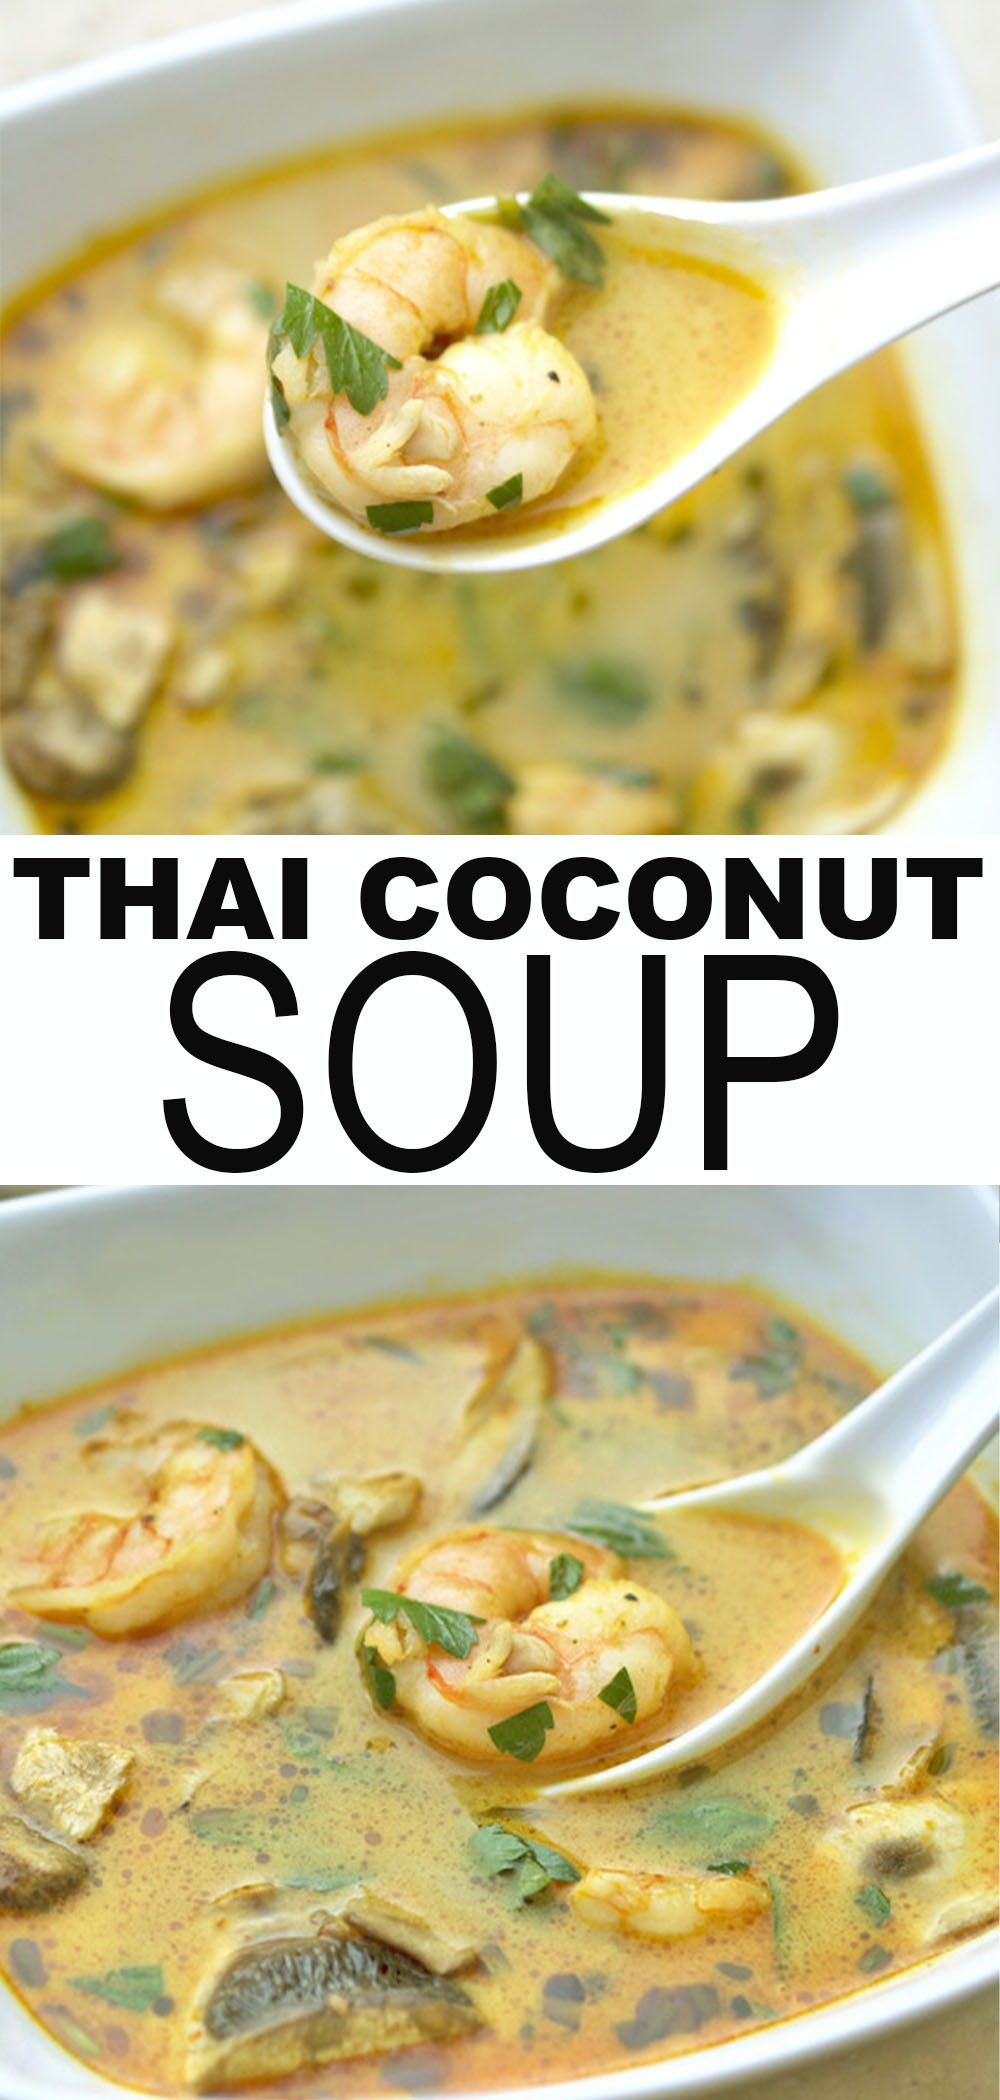 Easy Thai Coconut Soup 25 Minutes Chef Savvy Recipe Thai Coconut Soup Healthy Recipes Coconut Soup